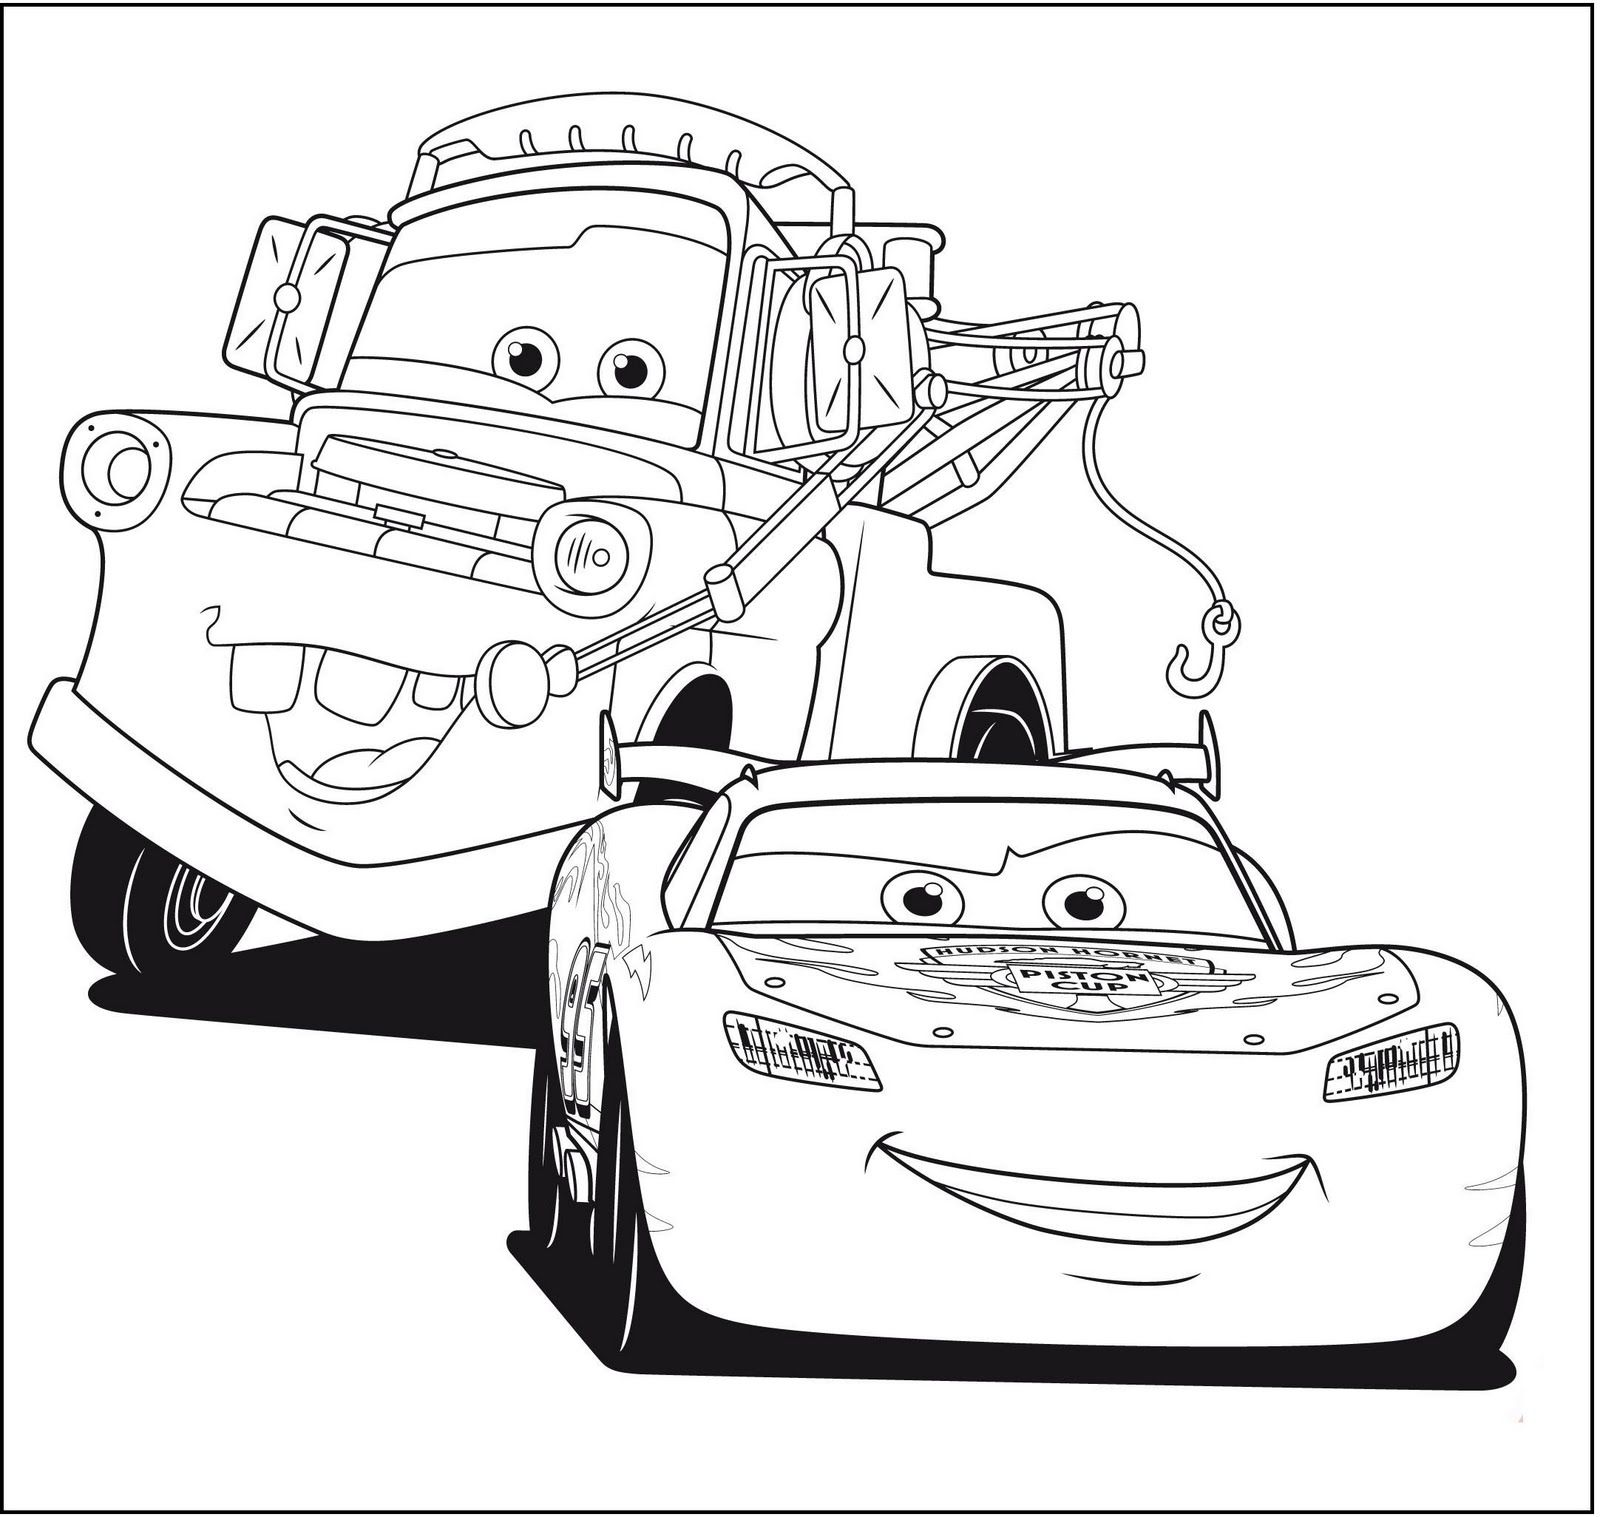 Coloring cars 2 online - Free Coloring Pages Disney Cars Coloring Coloring Pages Cars 2 Online